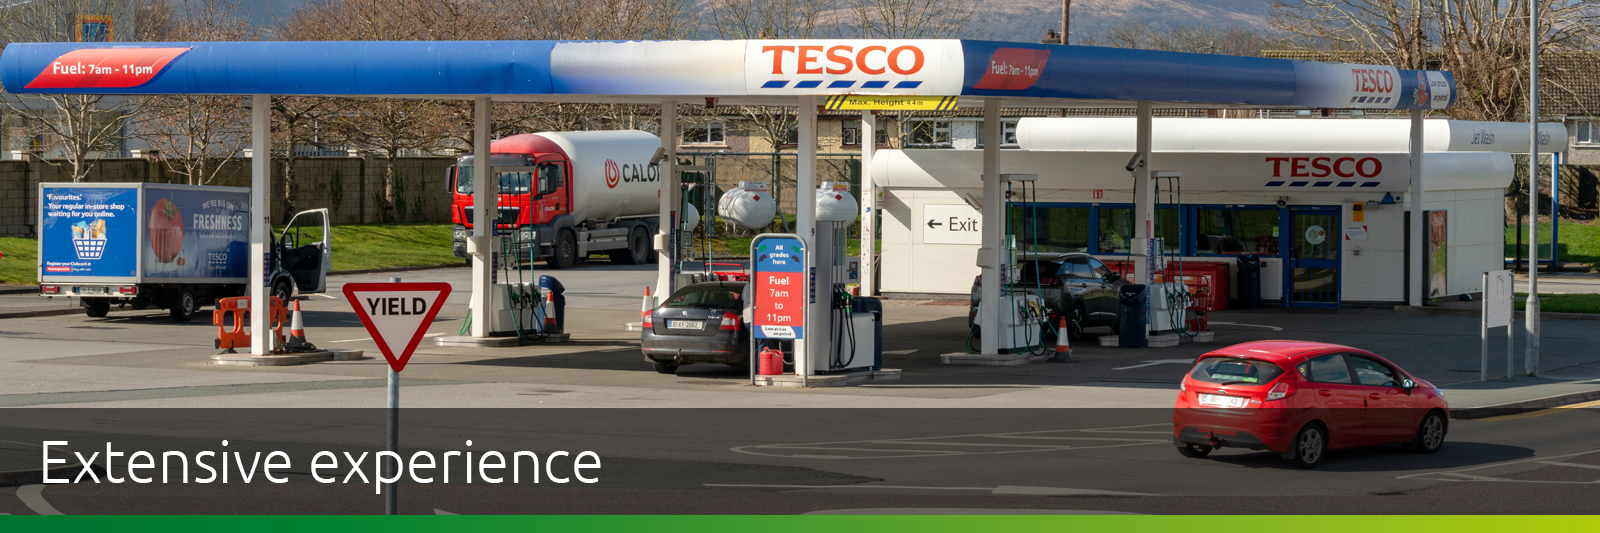 Tesco Petrol Filling Station